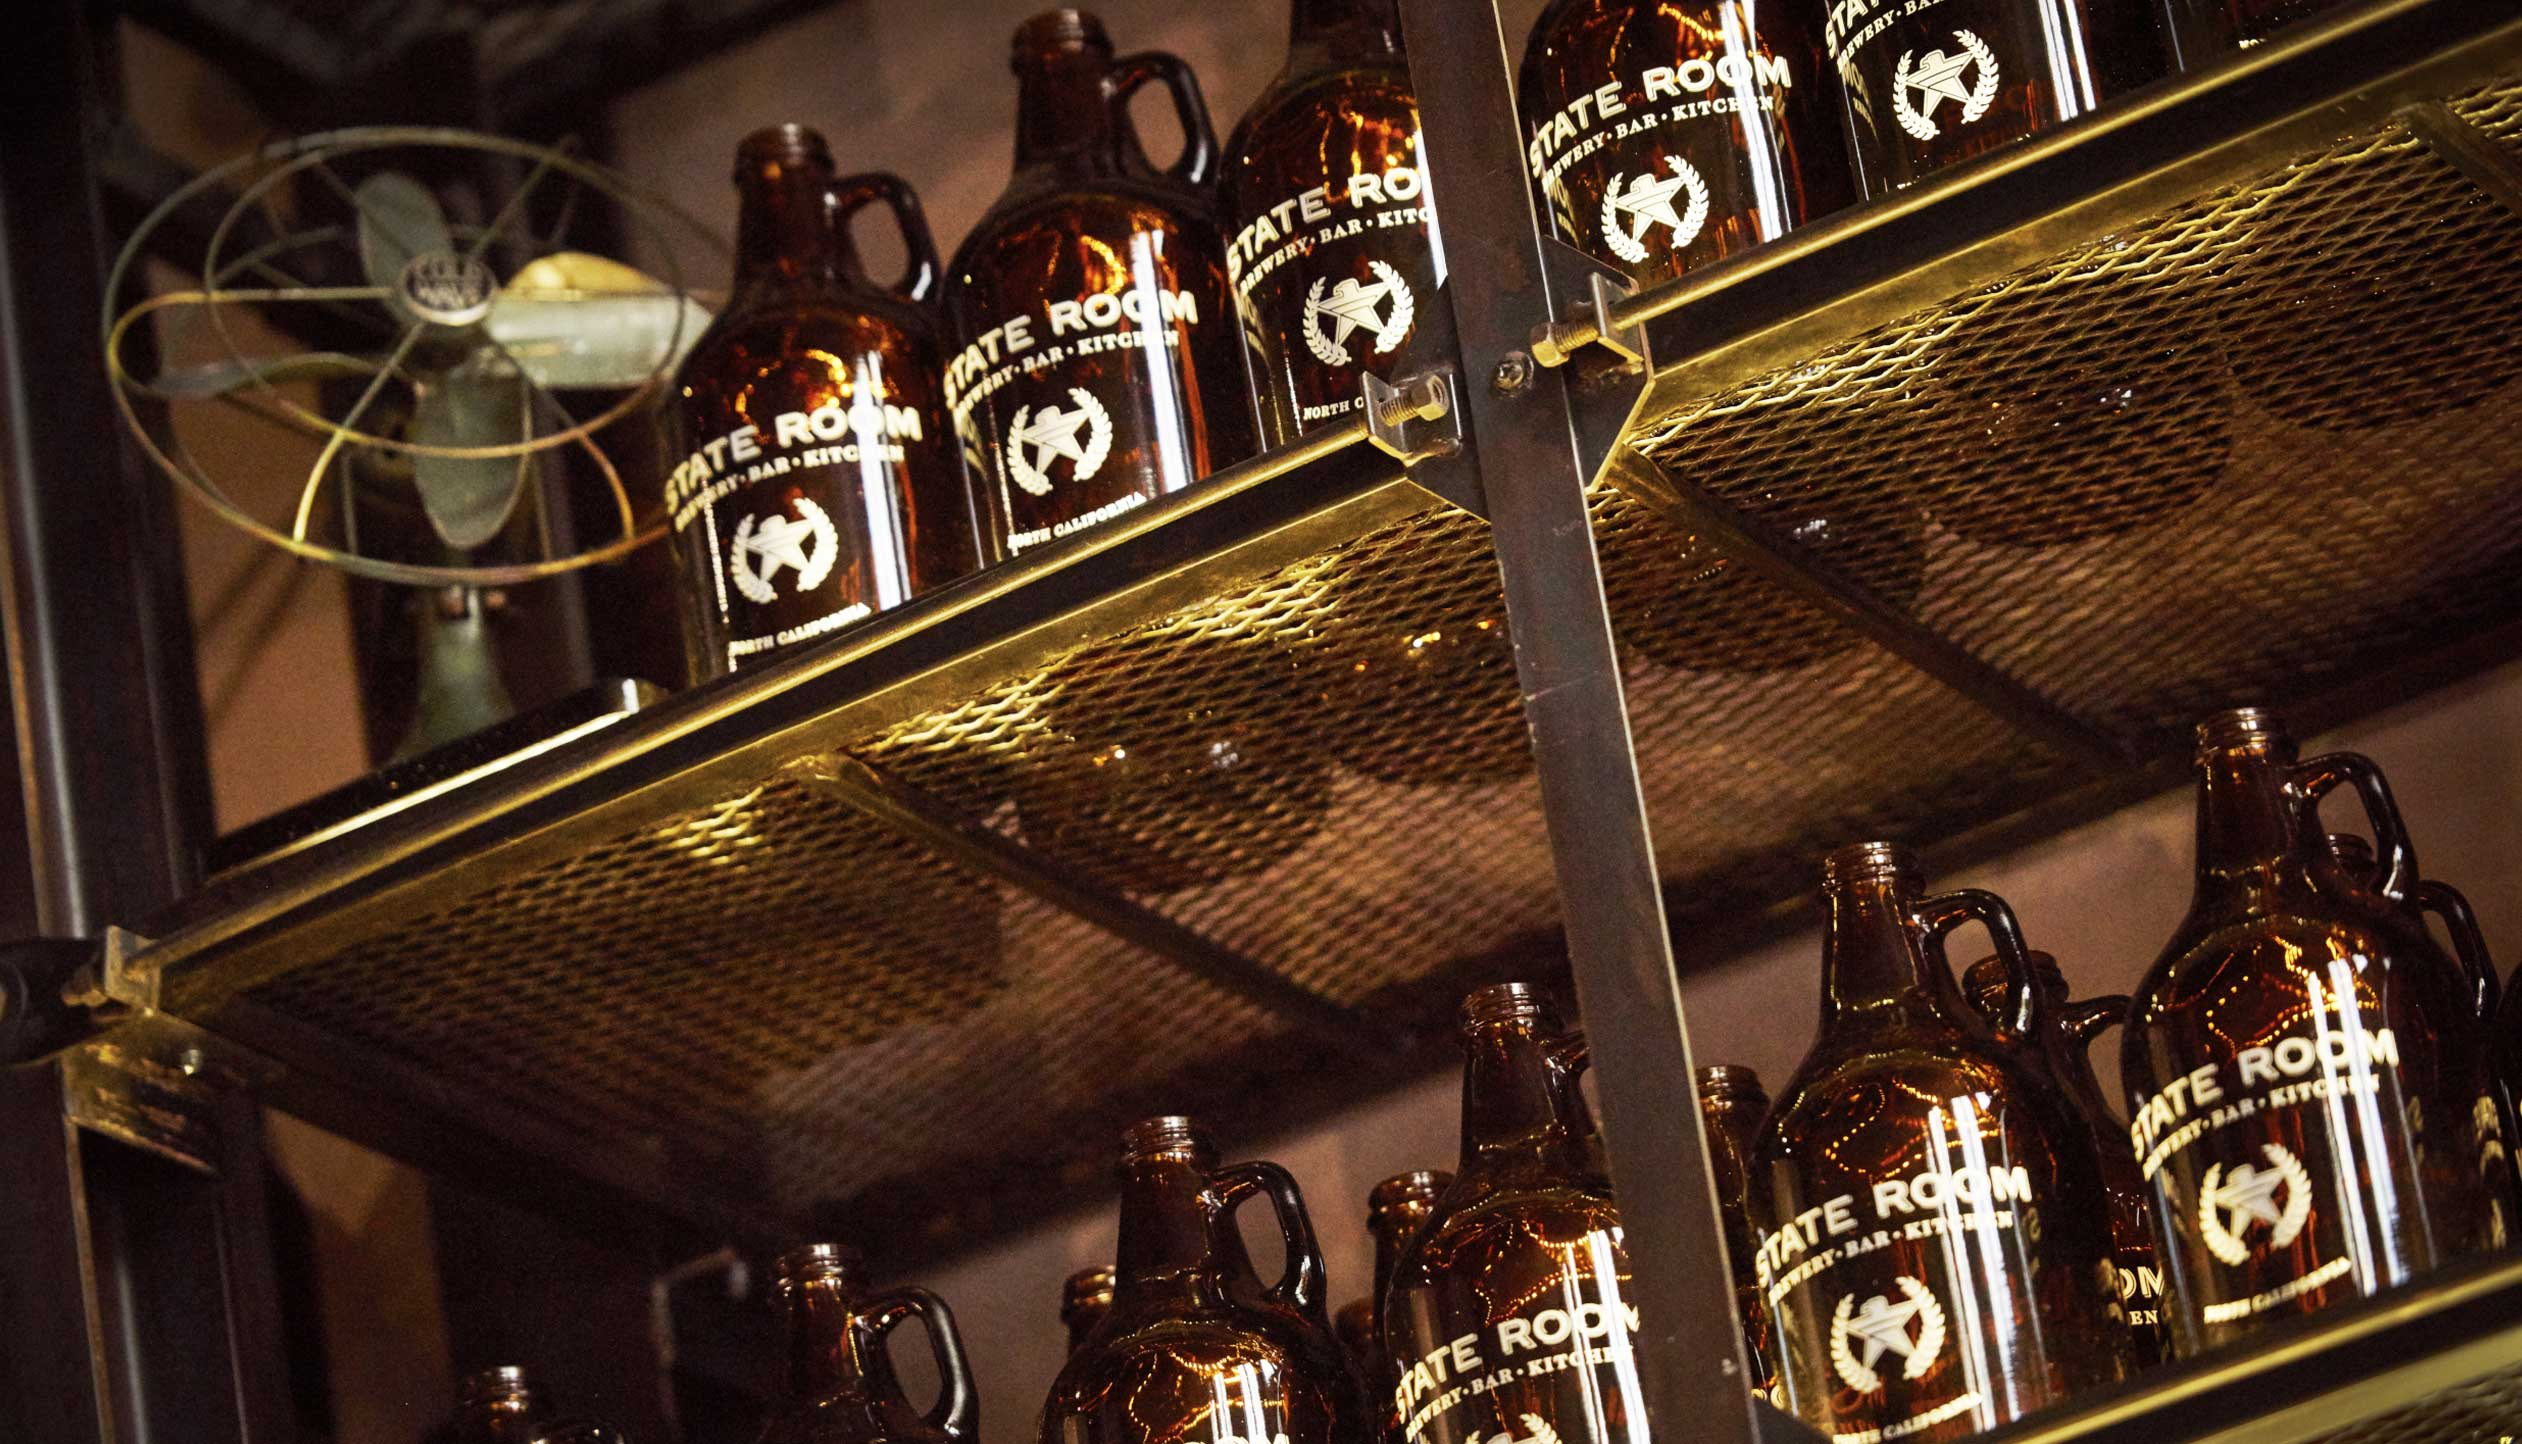 stateroom-brewery-growlers